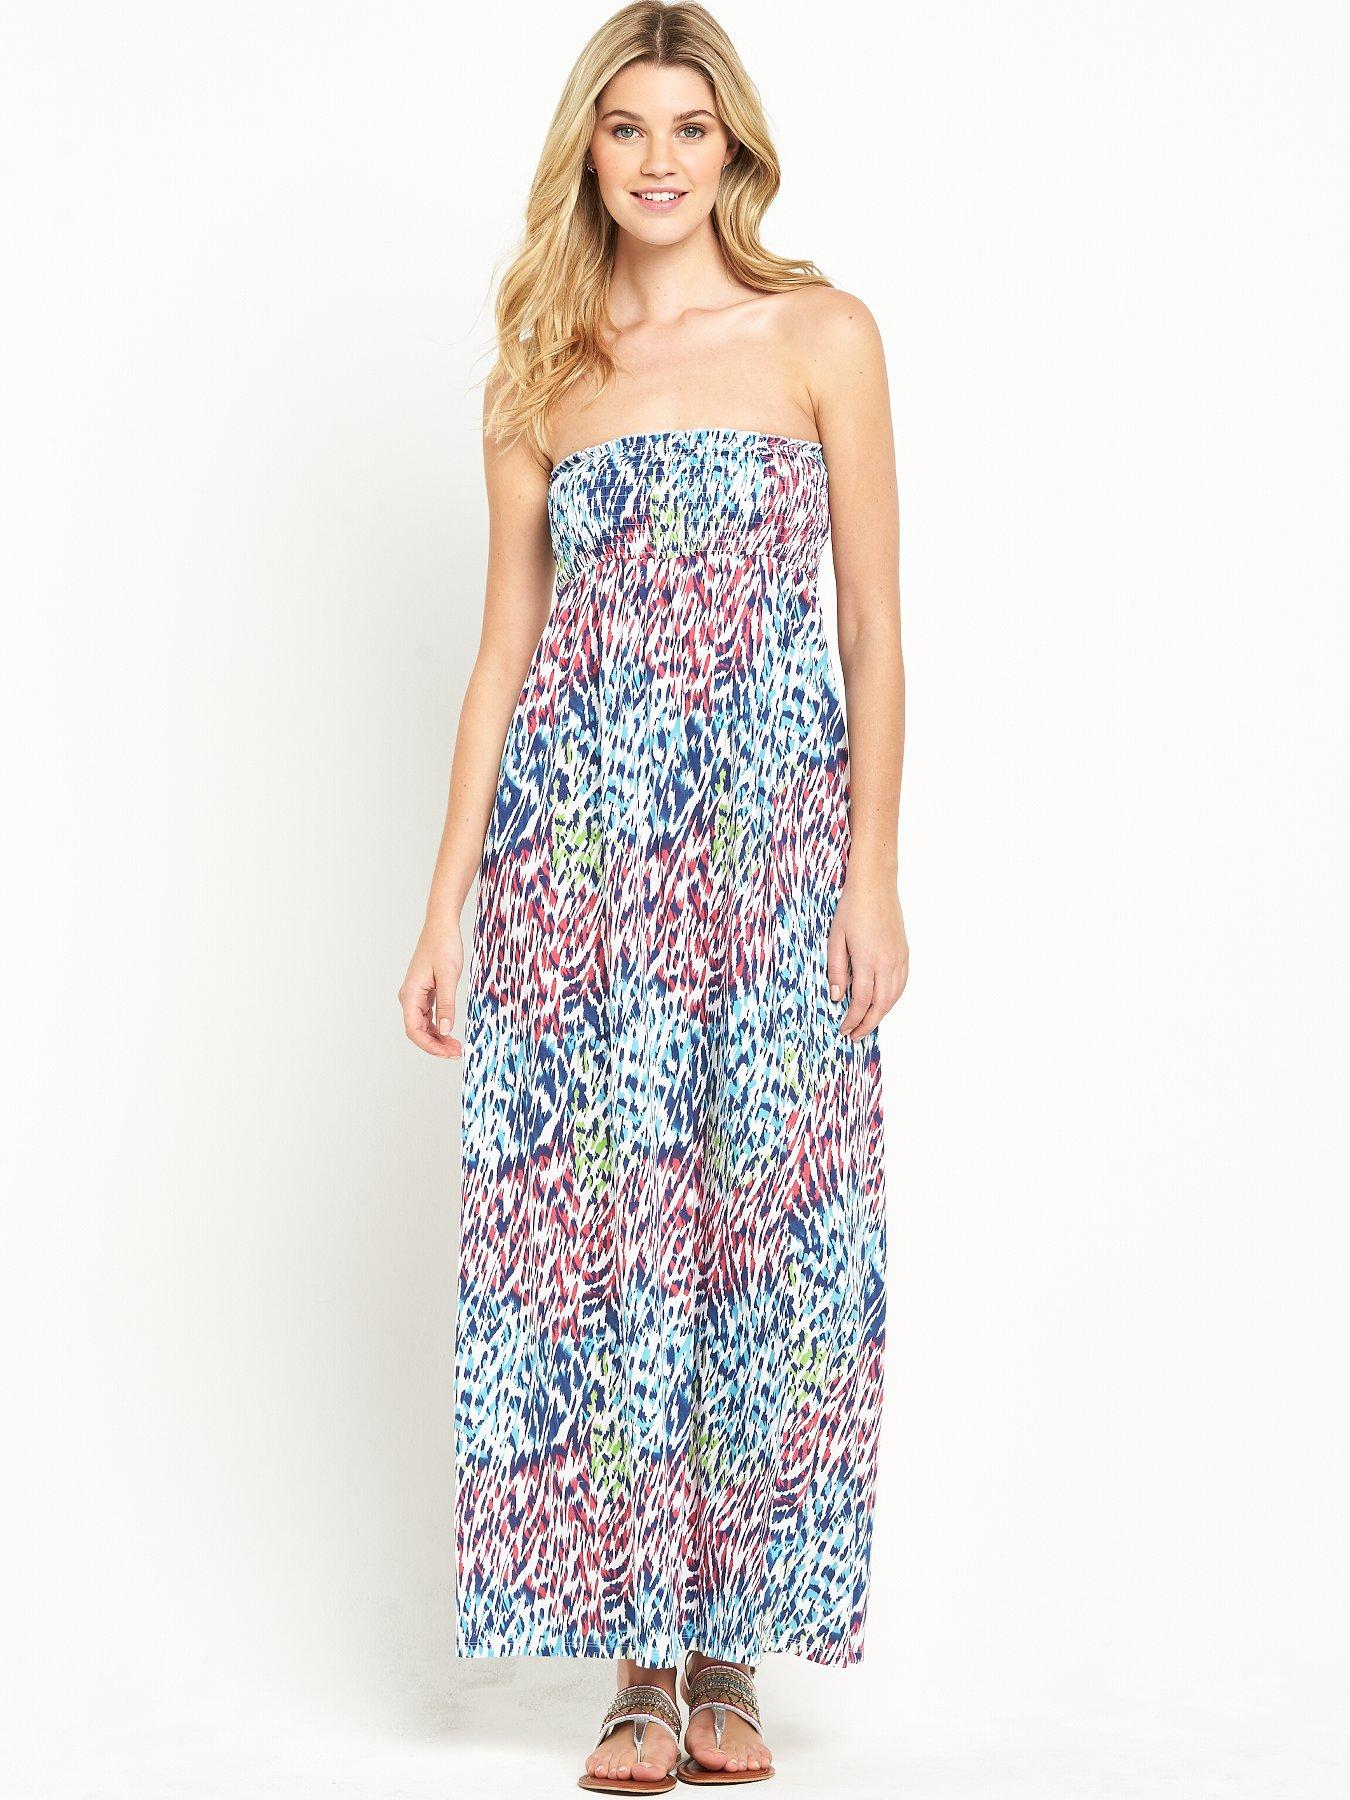 South Animal Bandeau Maxi Dress